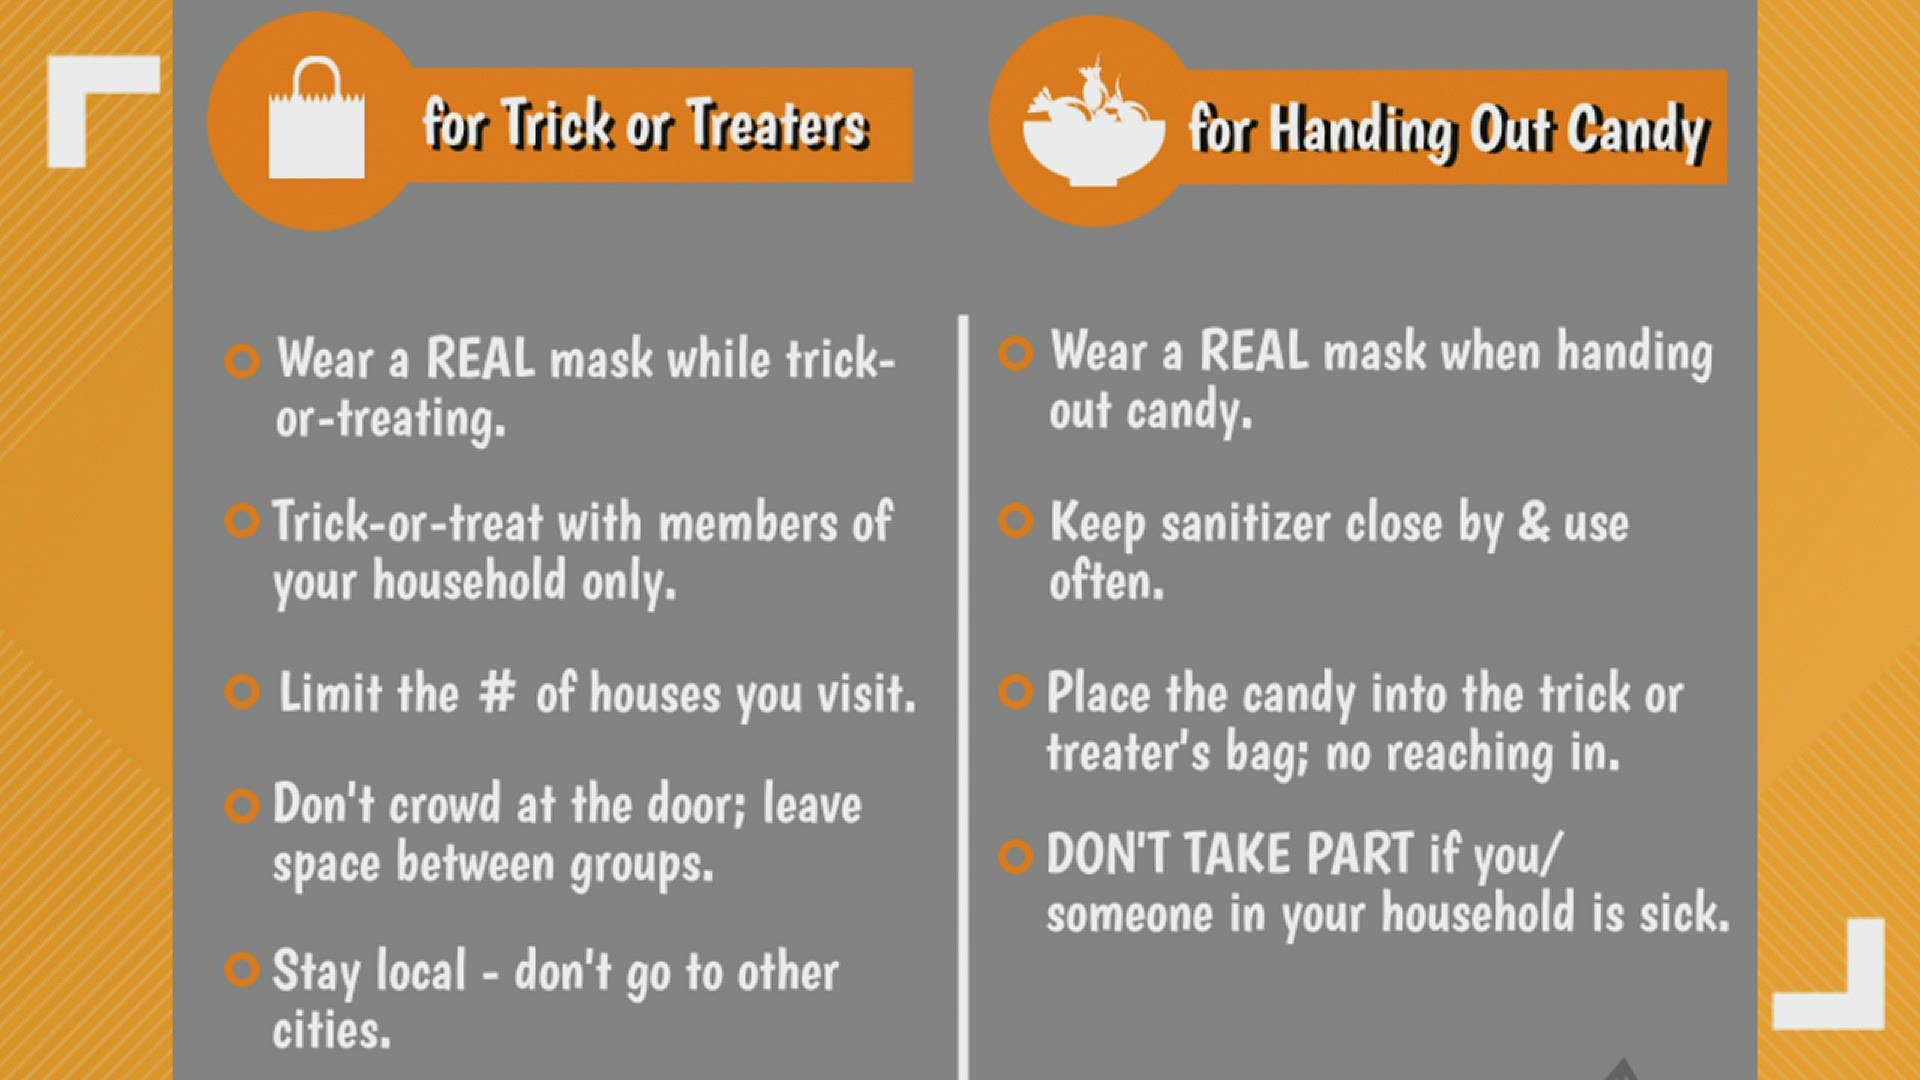 Quad Cities Halloween Parties October 26, 2020 How to trick or treat safely this Halloween during the coronavirus